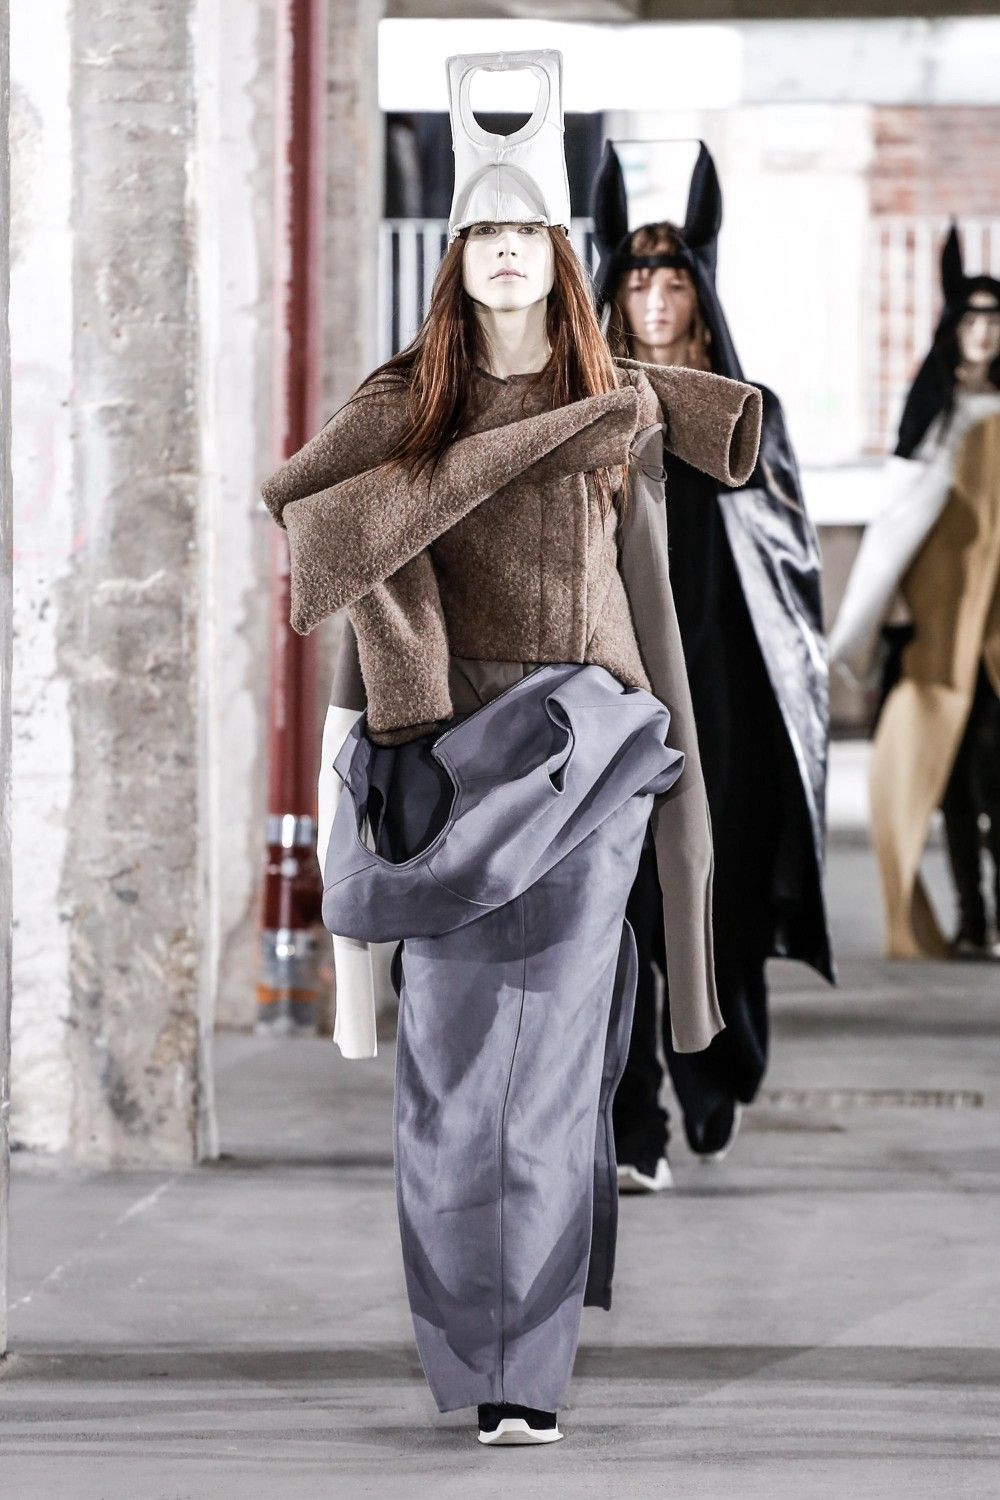 THIS IS THE LOOK: ofAnti-Fashion.